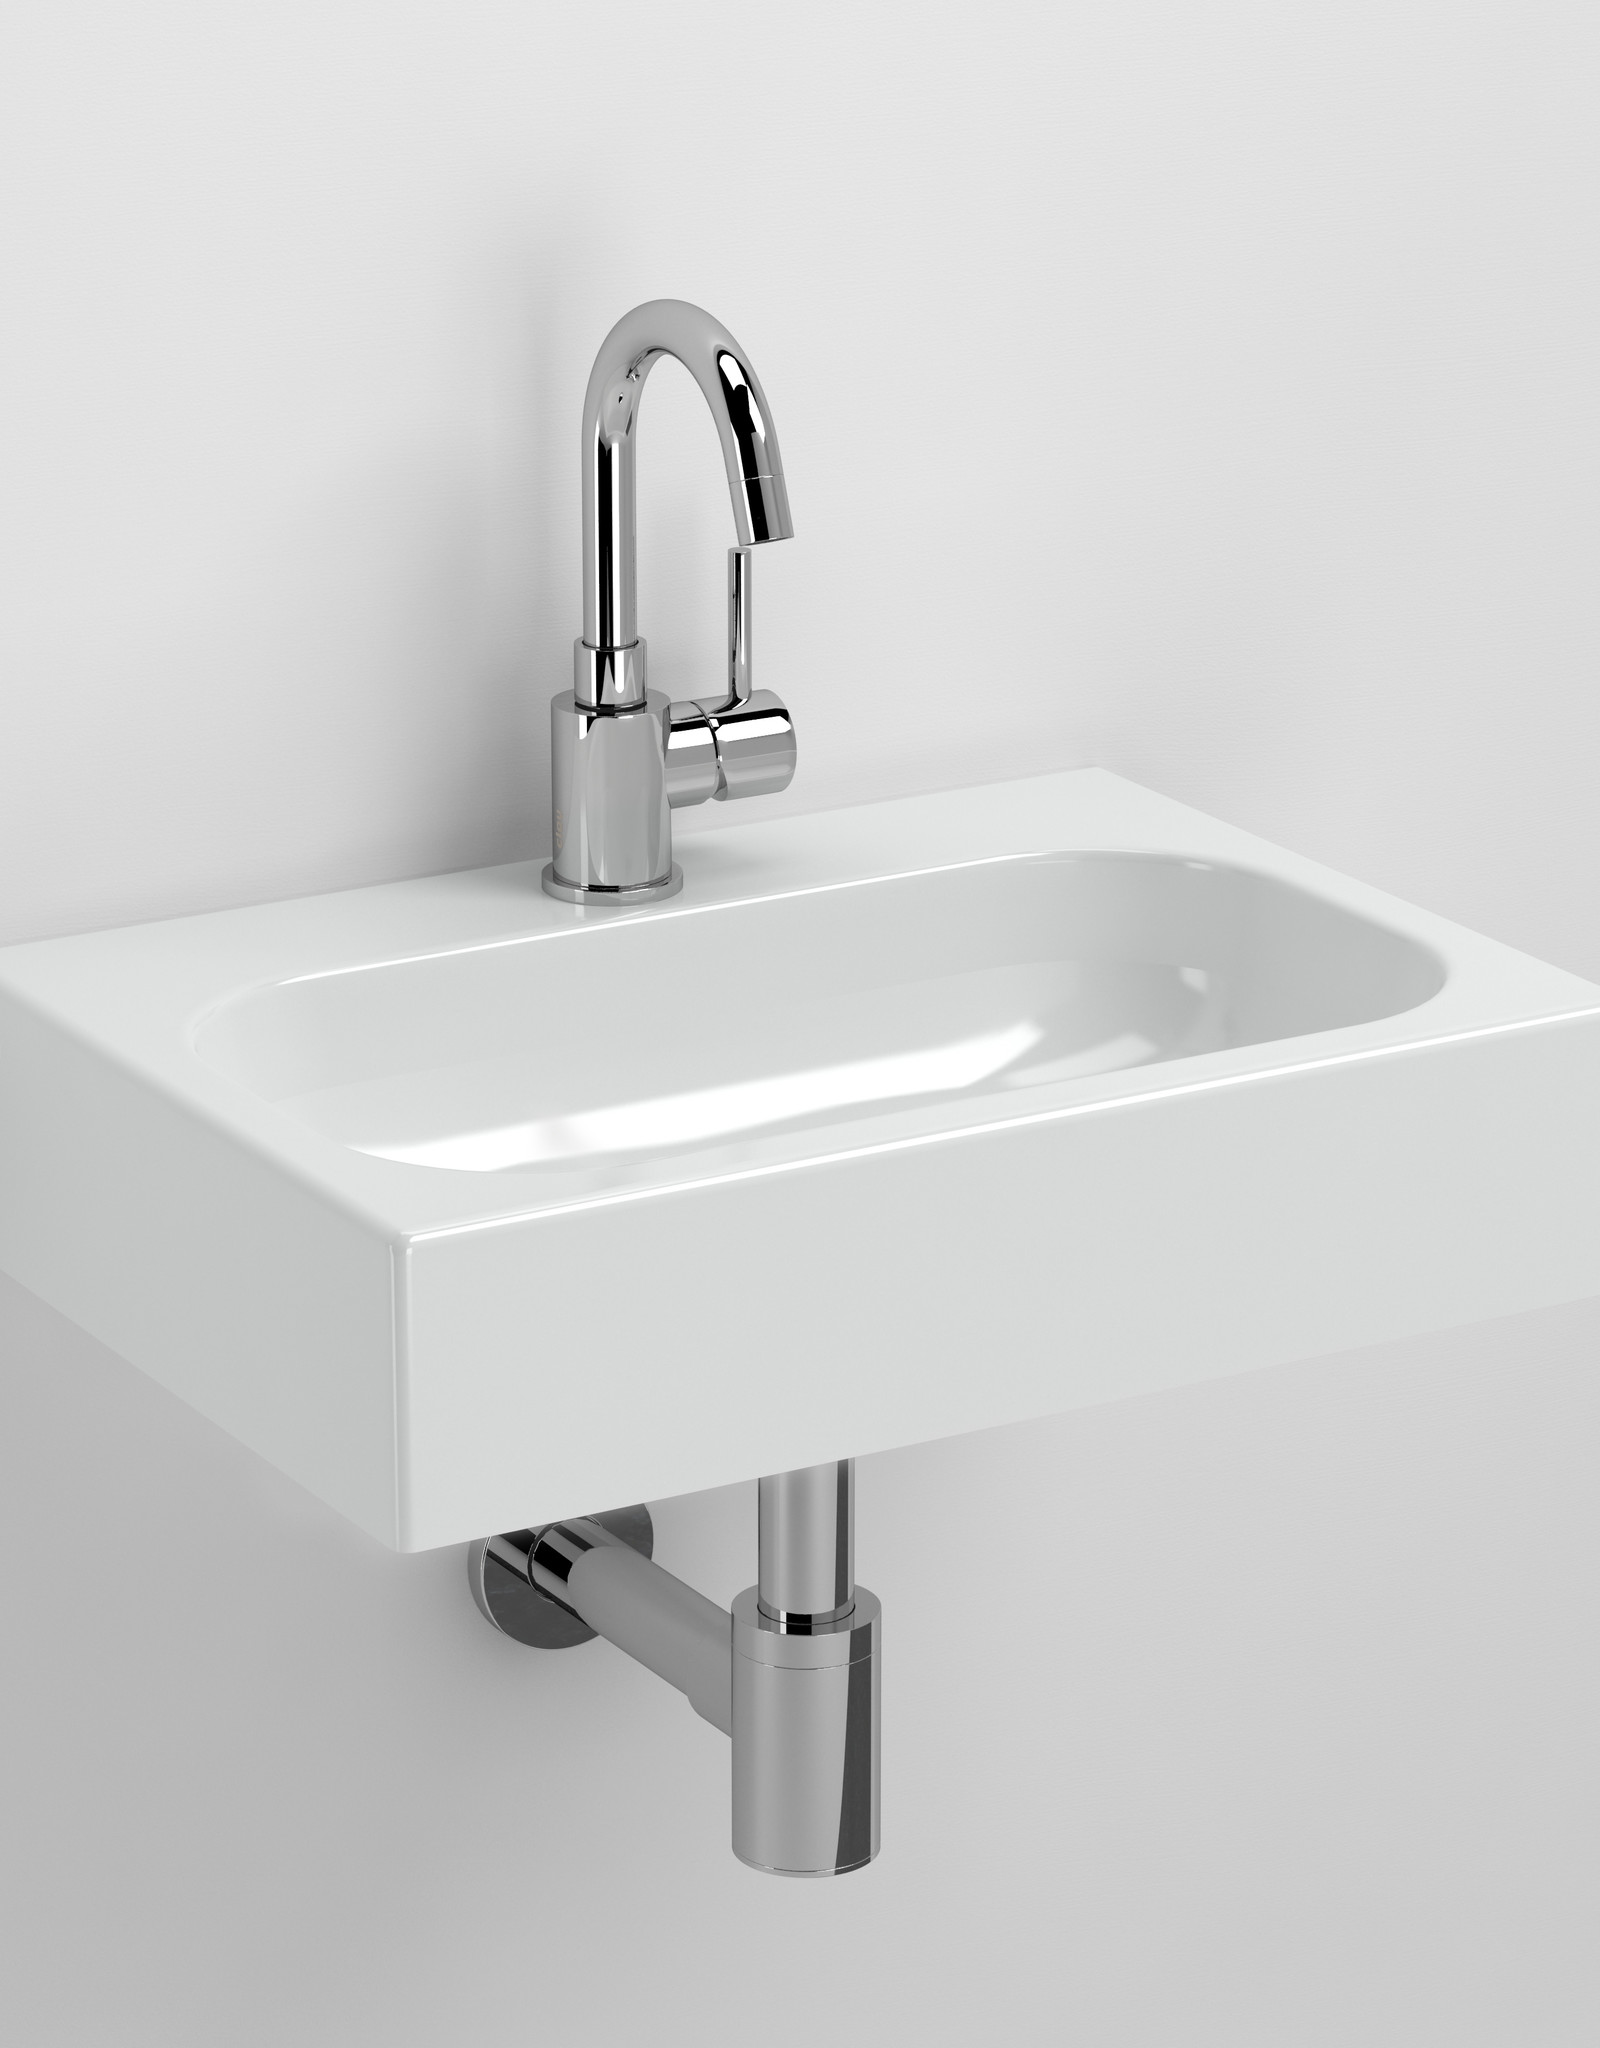 Mini Match Me wash-hand basin - outlet